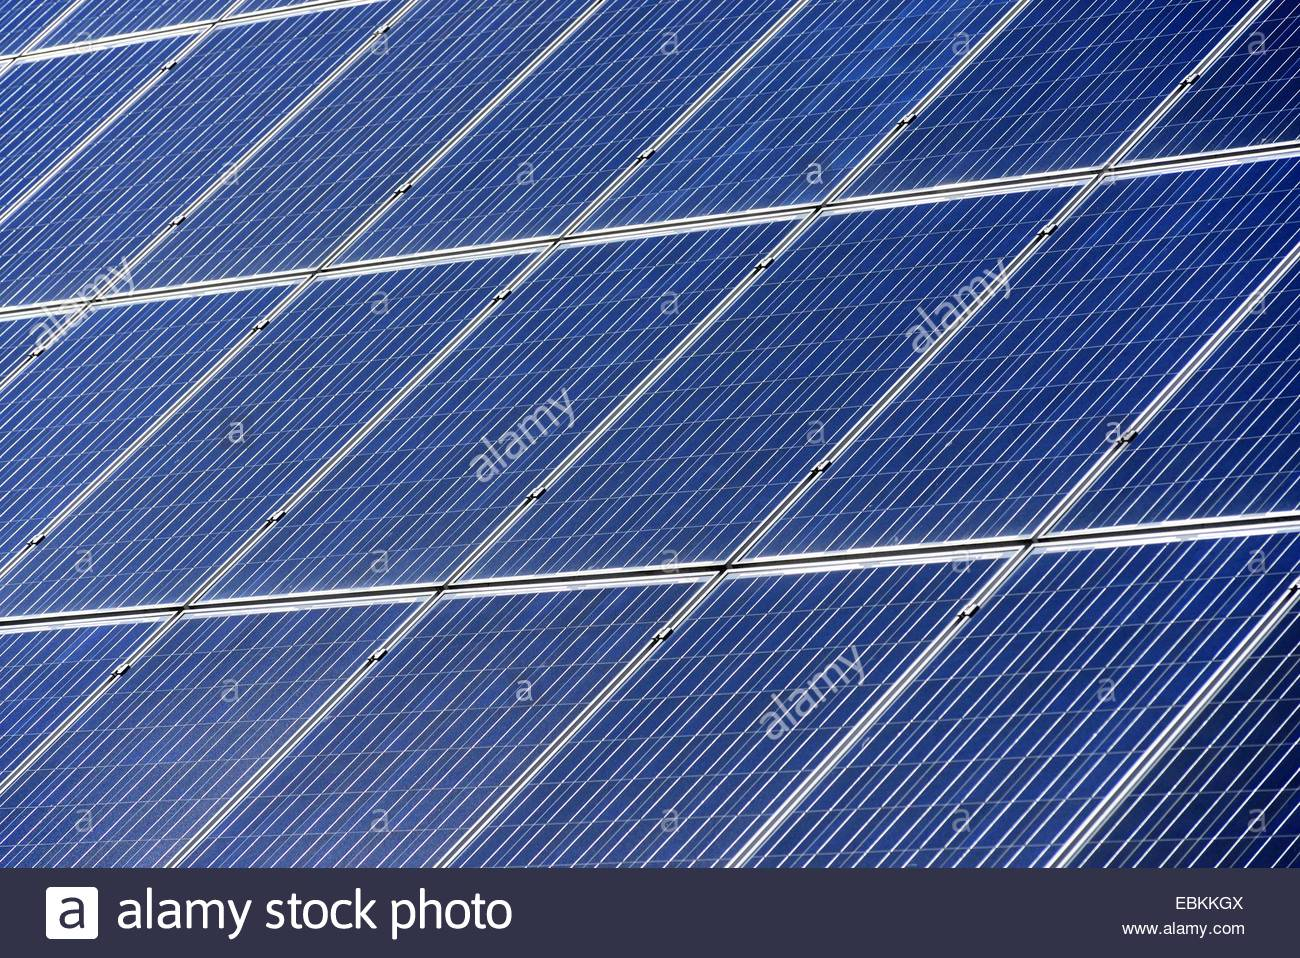 Solar Cells On The Roof Germany Stock Photo 76035146 Alamy